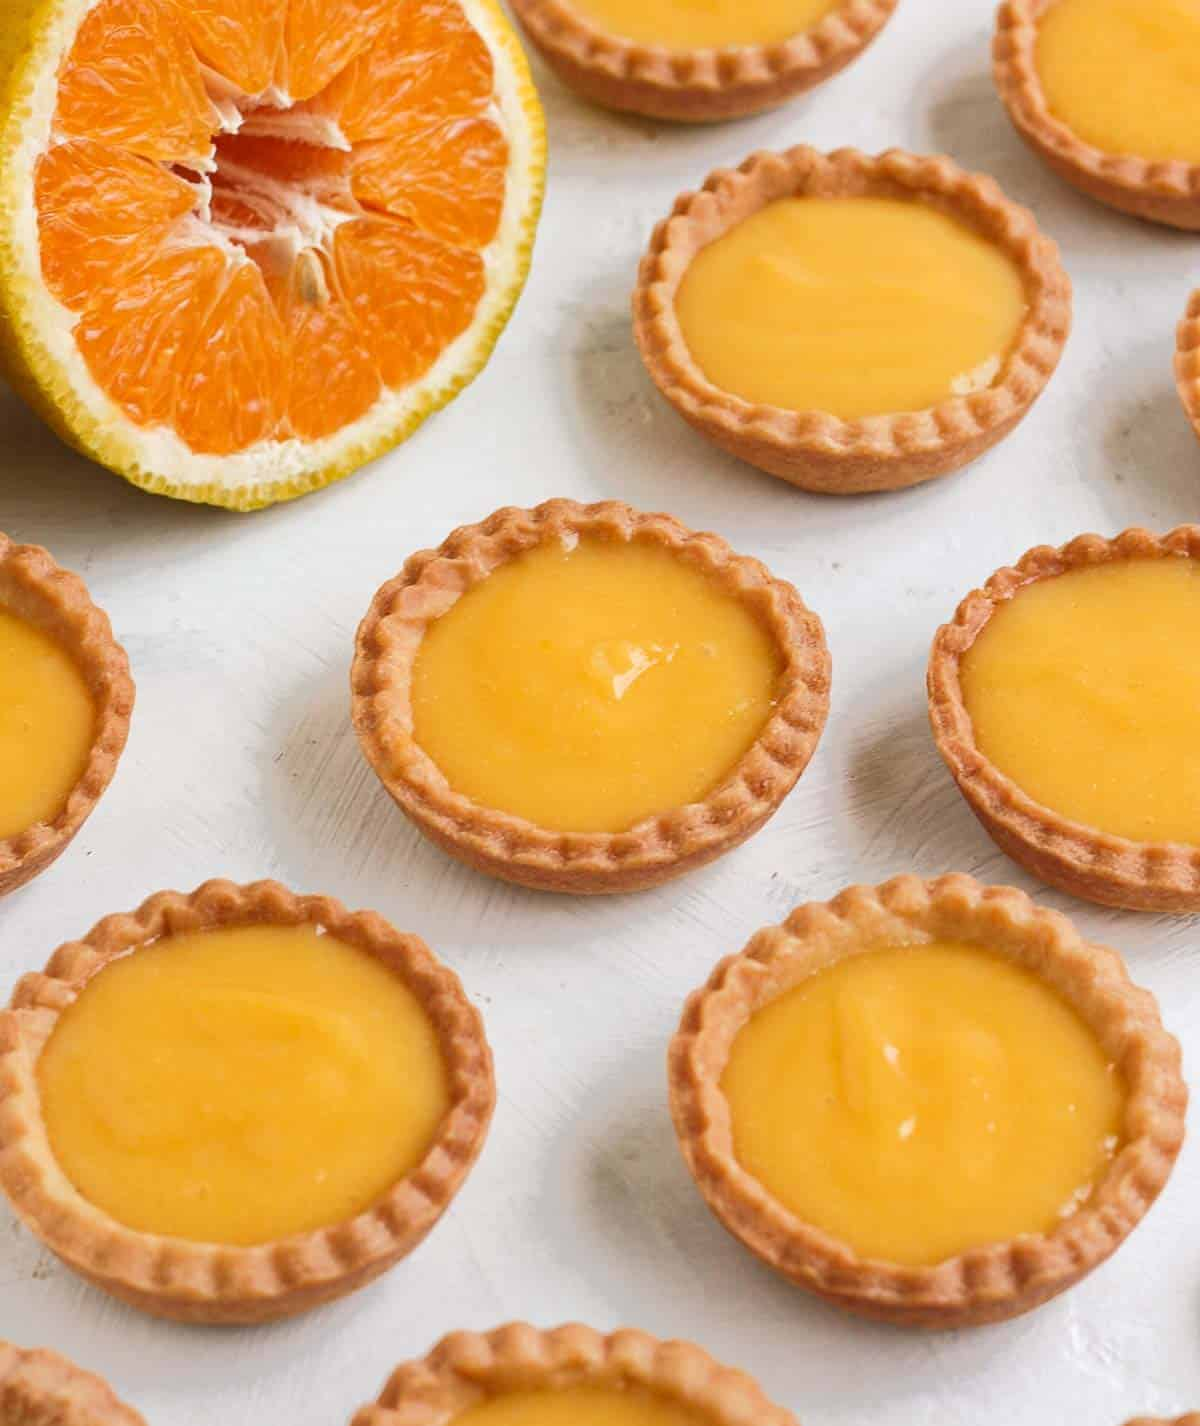 Tartlets on a white surface with half an orange in the background.